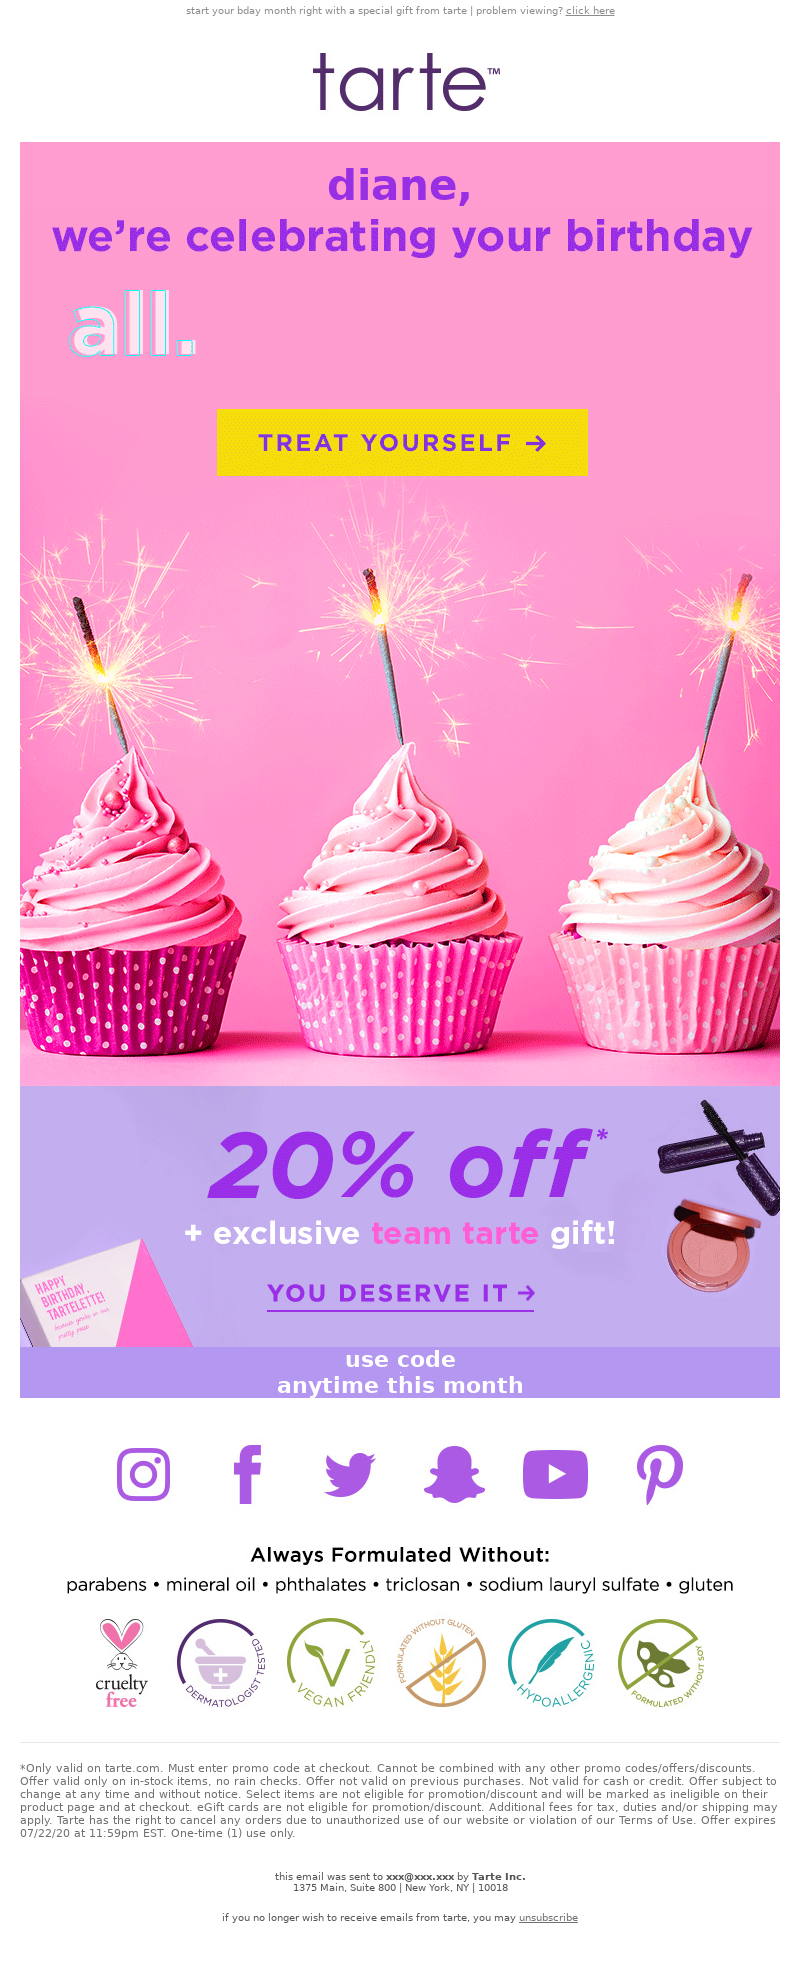 start your bday month right with a special gift from tarte | problem viewin